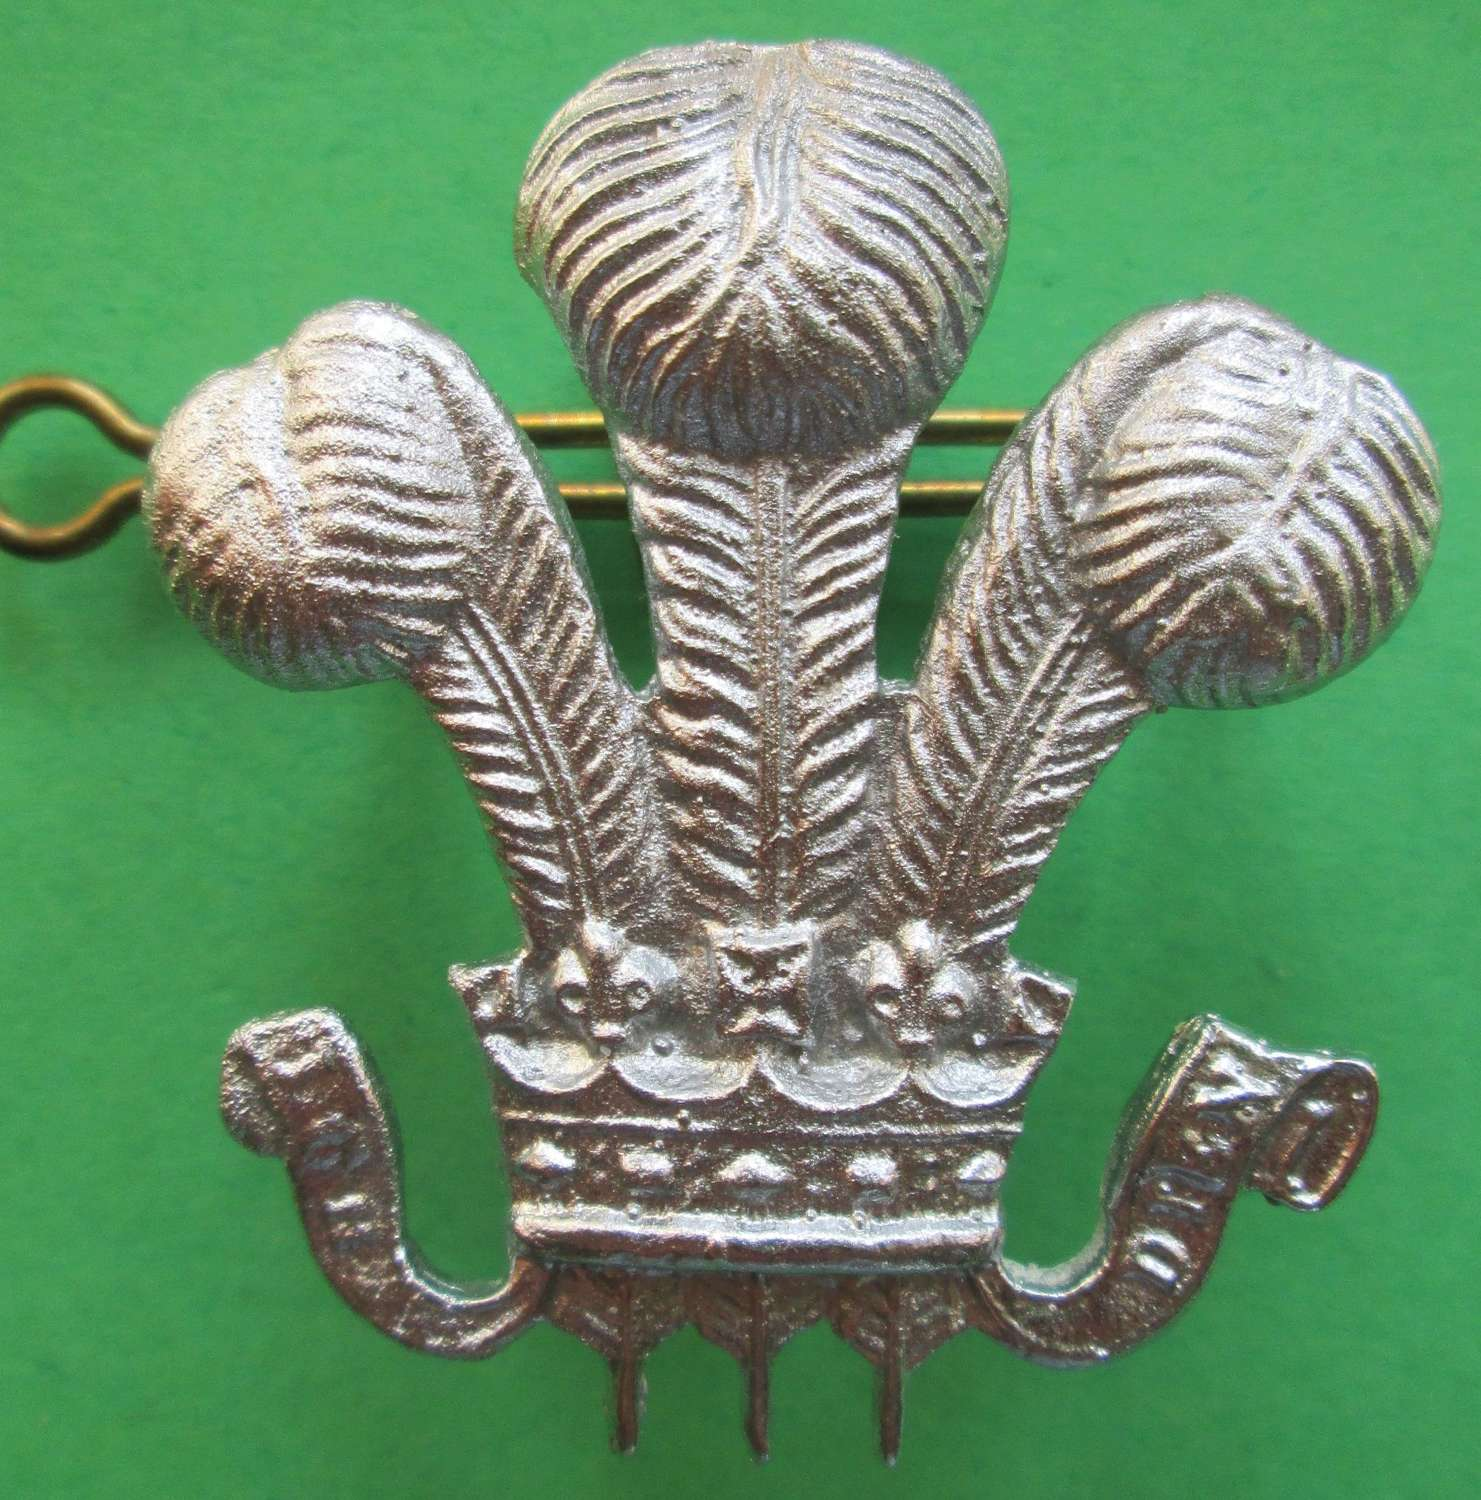 A WILTSHIRE YEOMANRY OTHER RANKS ARM BADGE